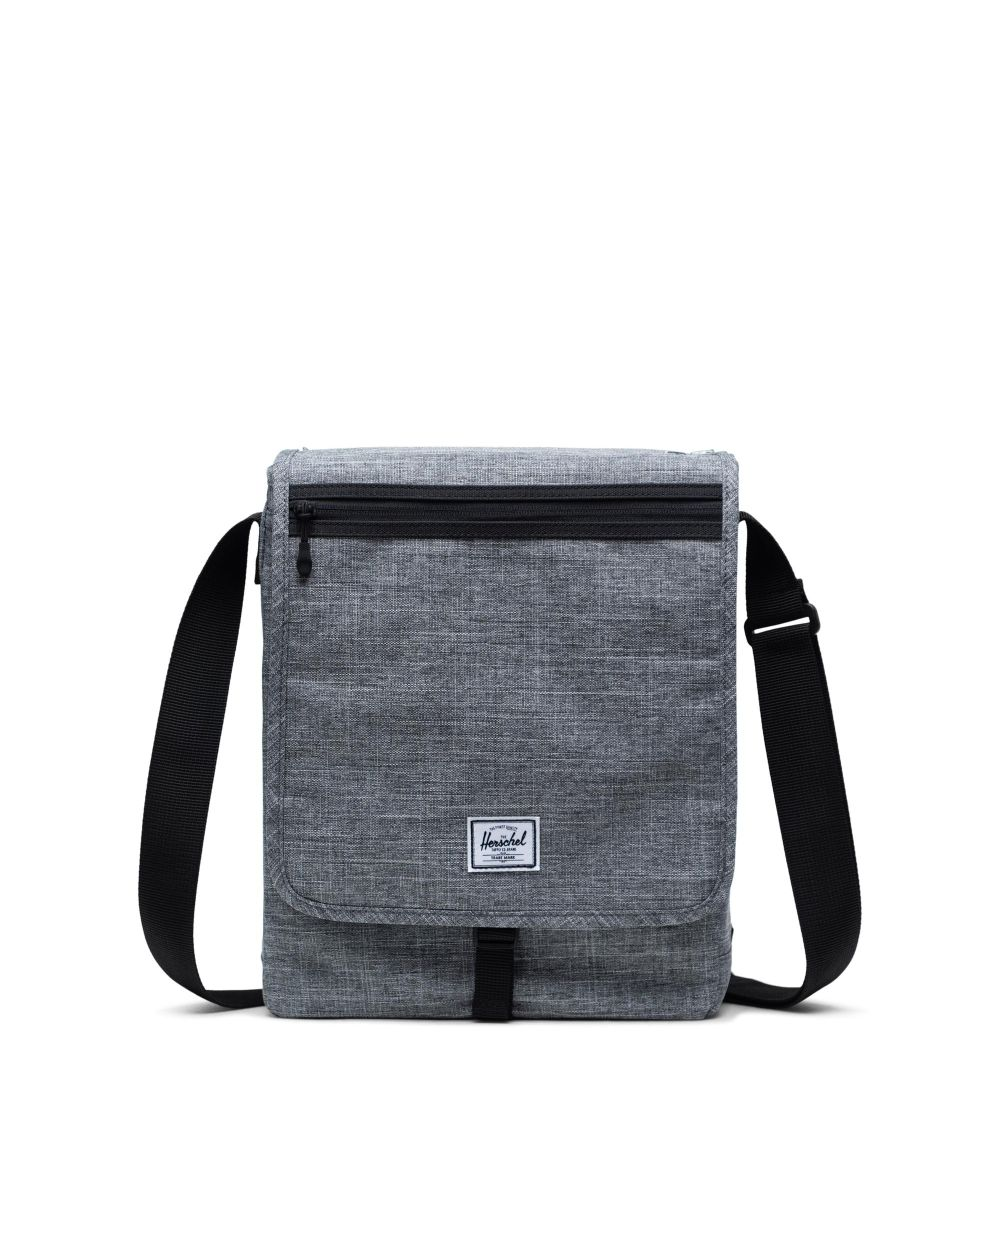 travel gift - small rectangular grey pouch bag with black strap